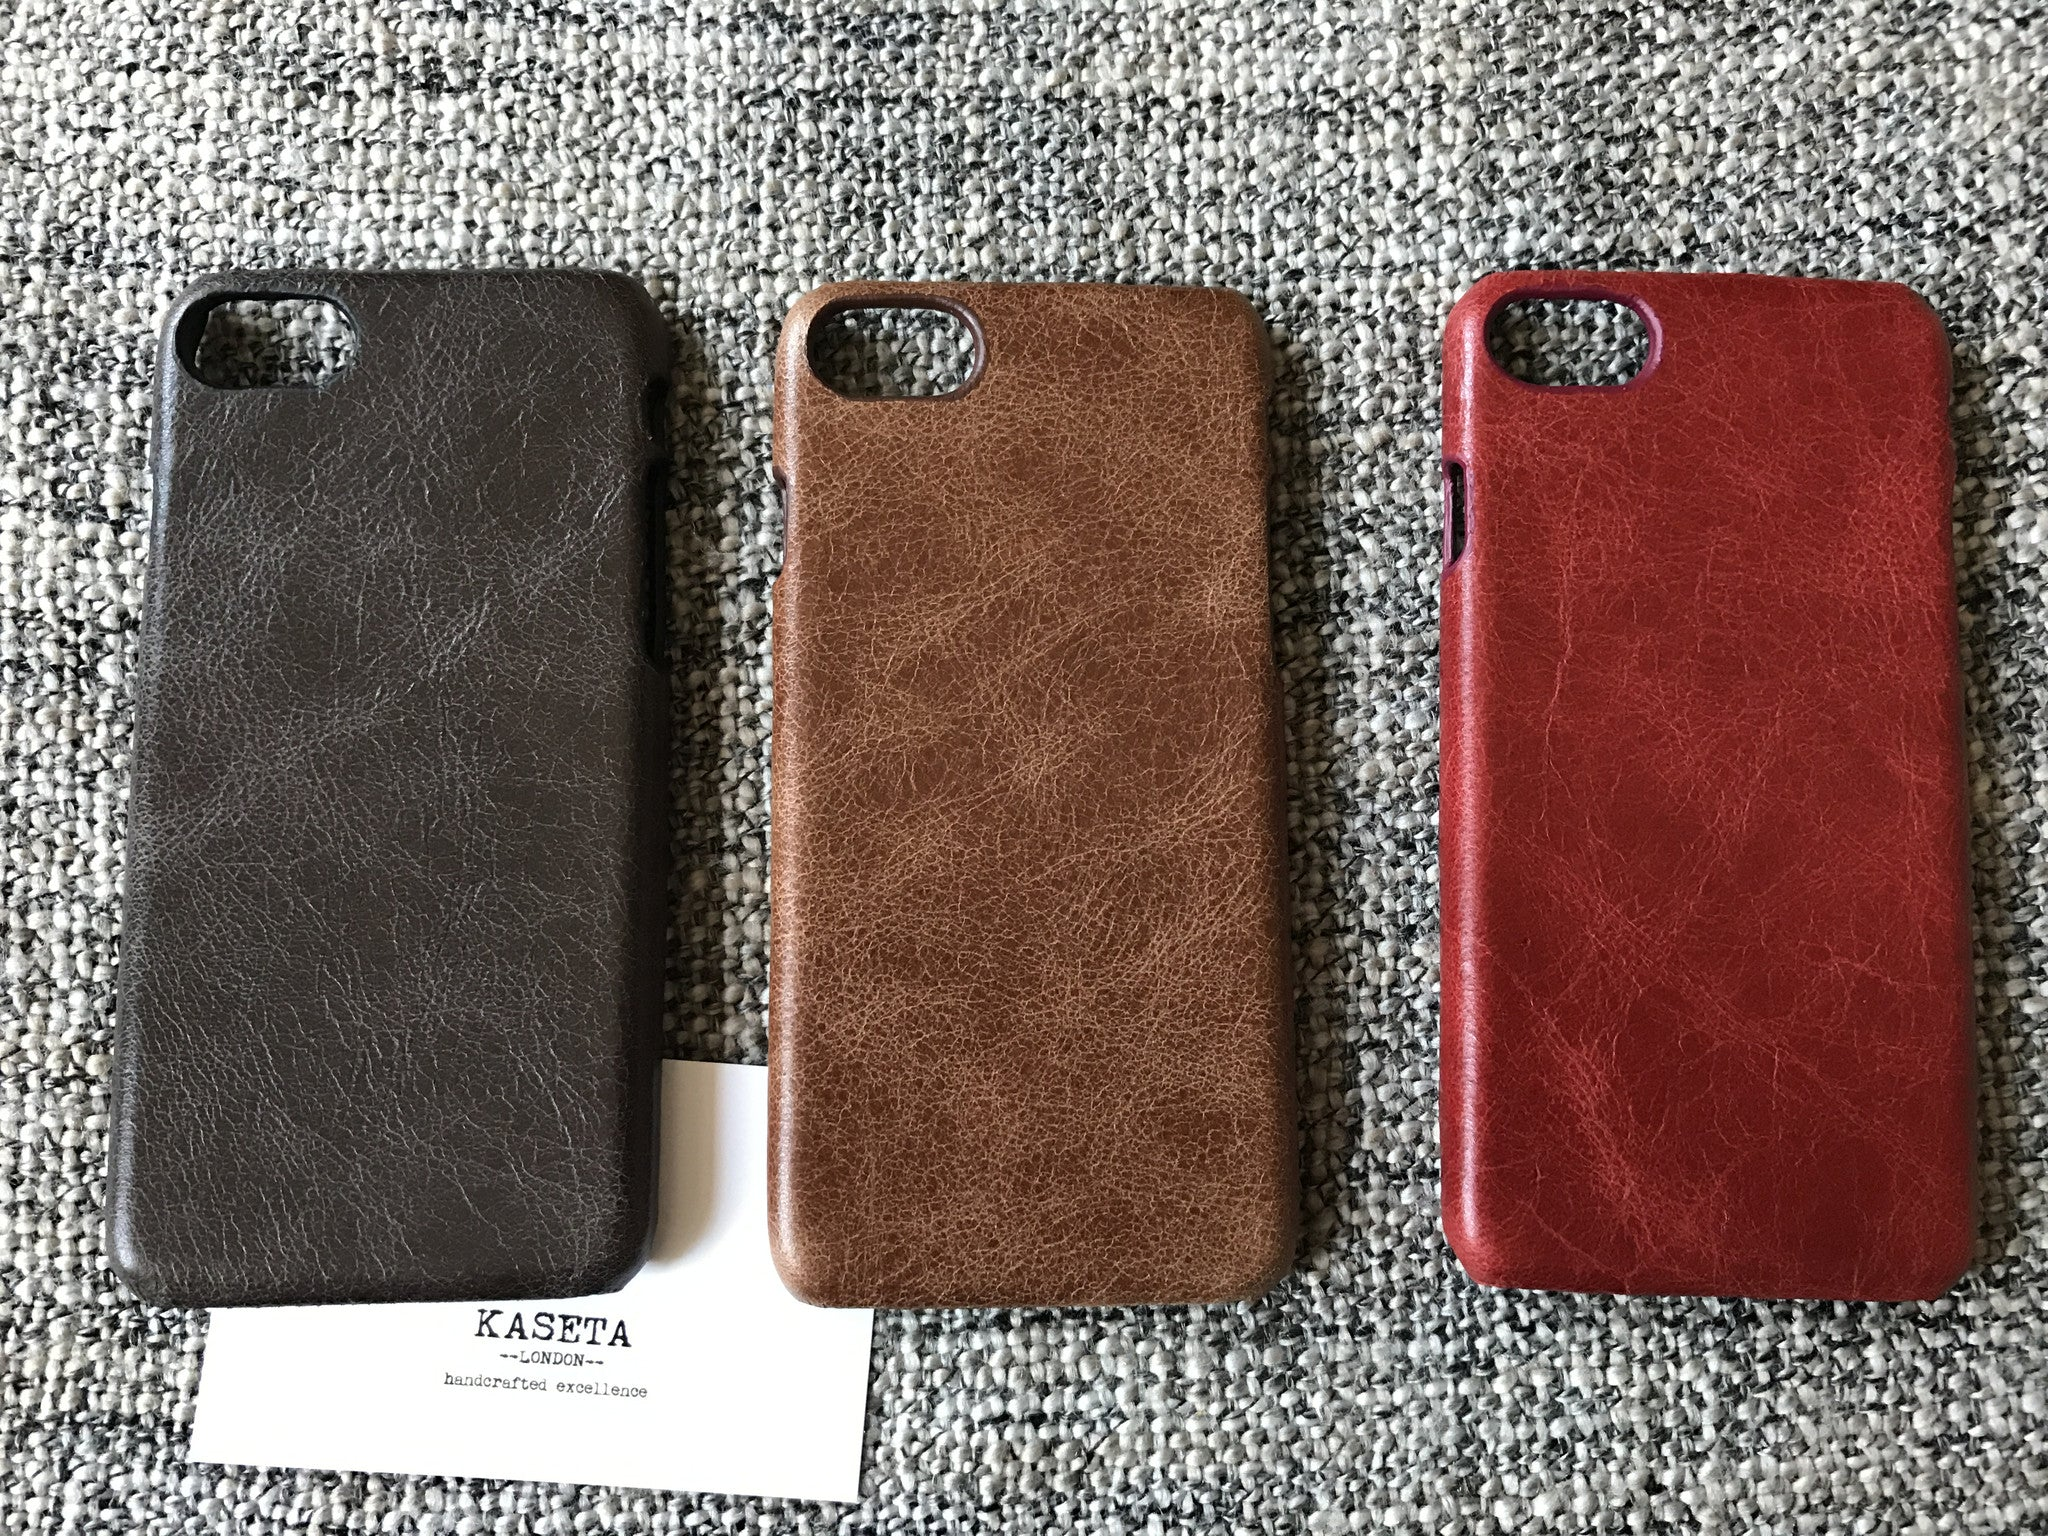 Caso de couro do iphone 7,  Étui en cuir pour iphone 7,  Funda de cuero para iphone 7 plus,